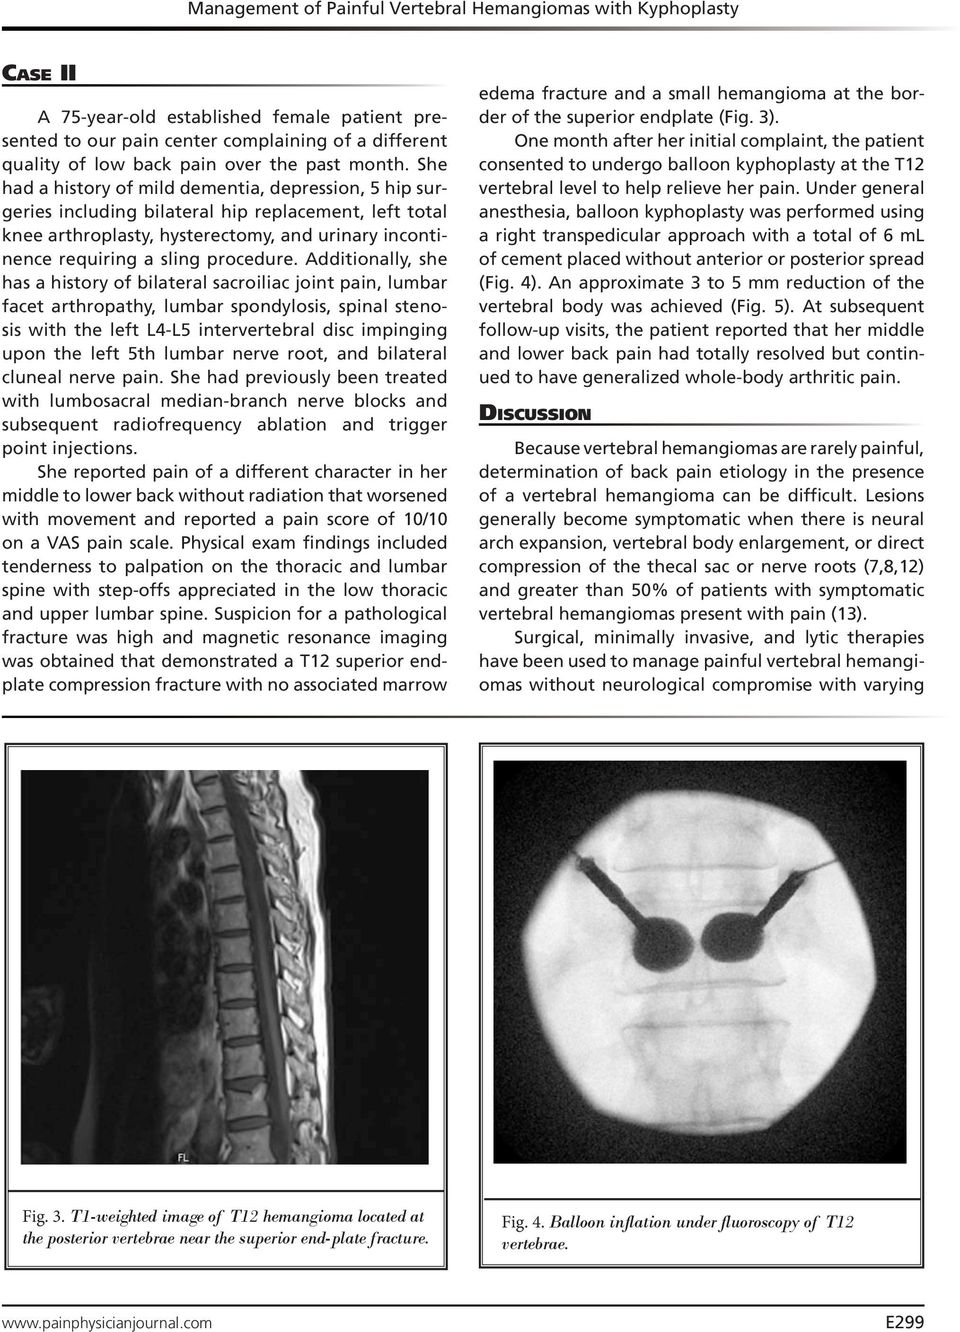 Management Of Painful Vertebral Hemangiomas With Kyphoplasty A